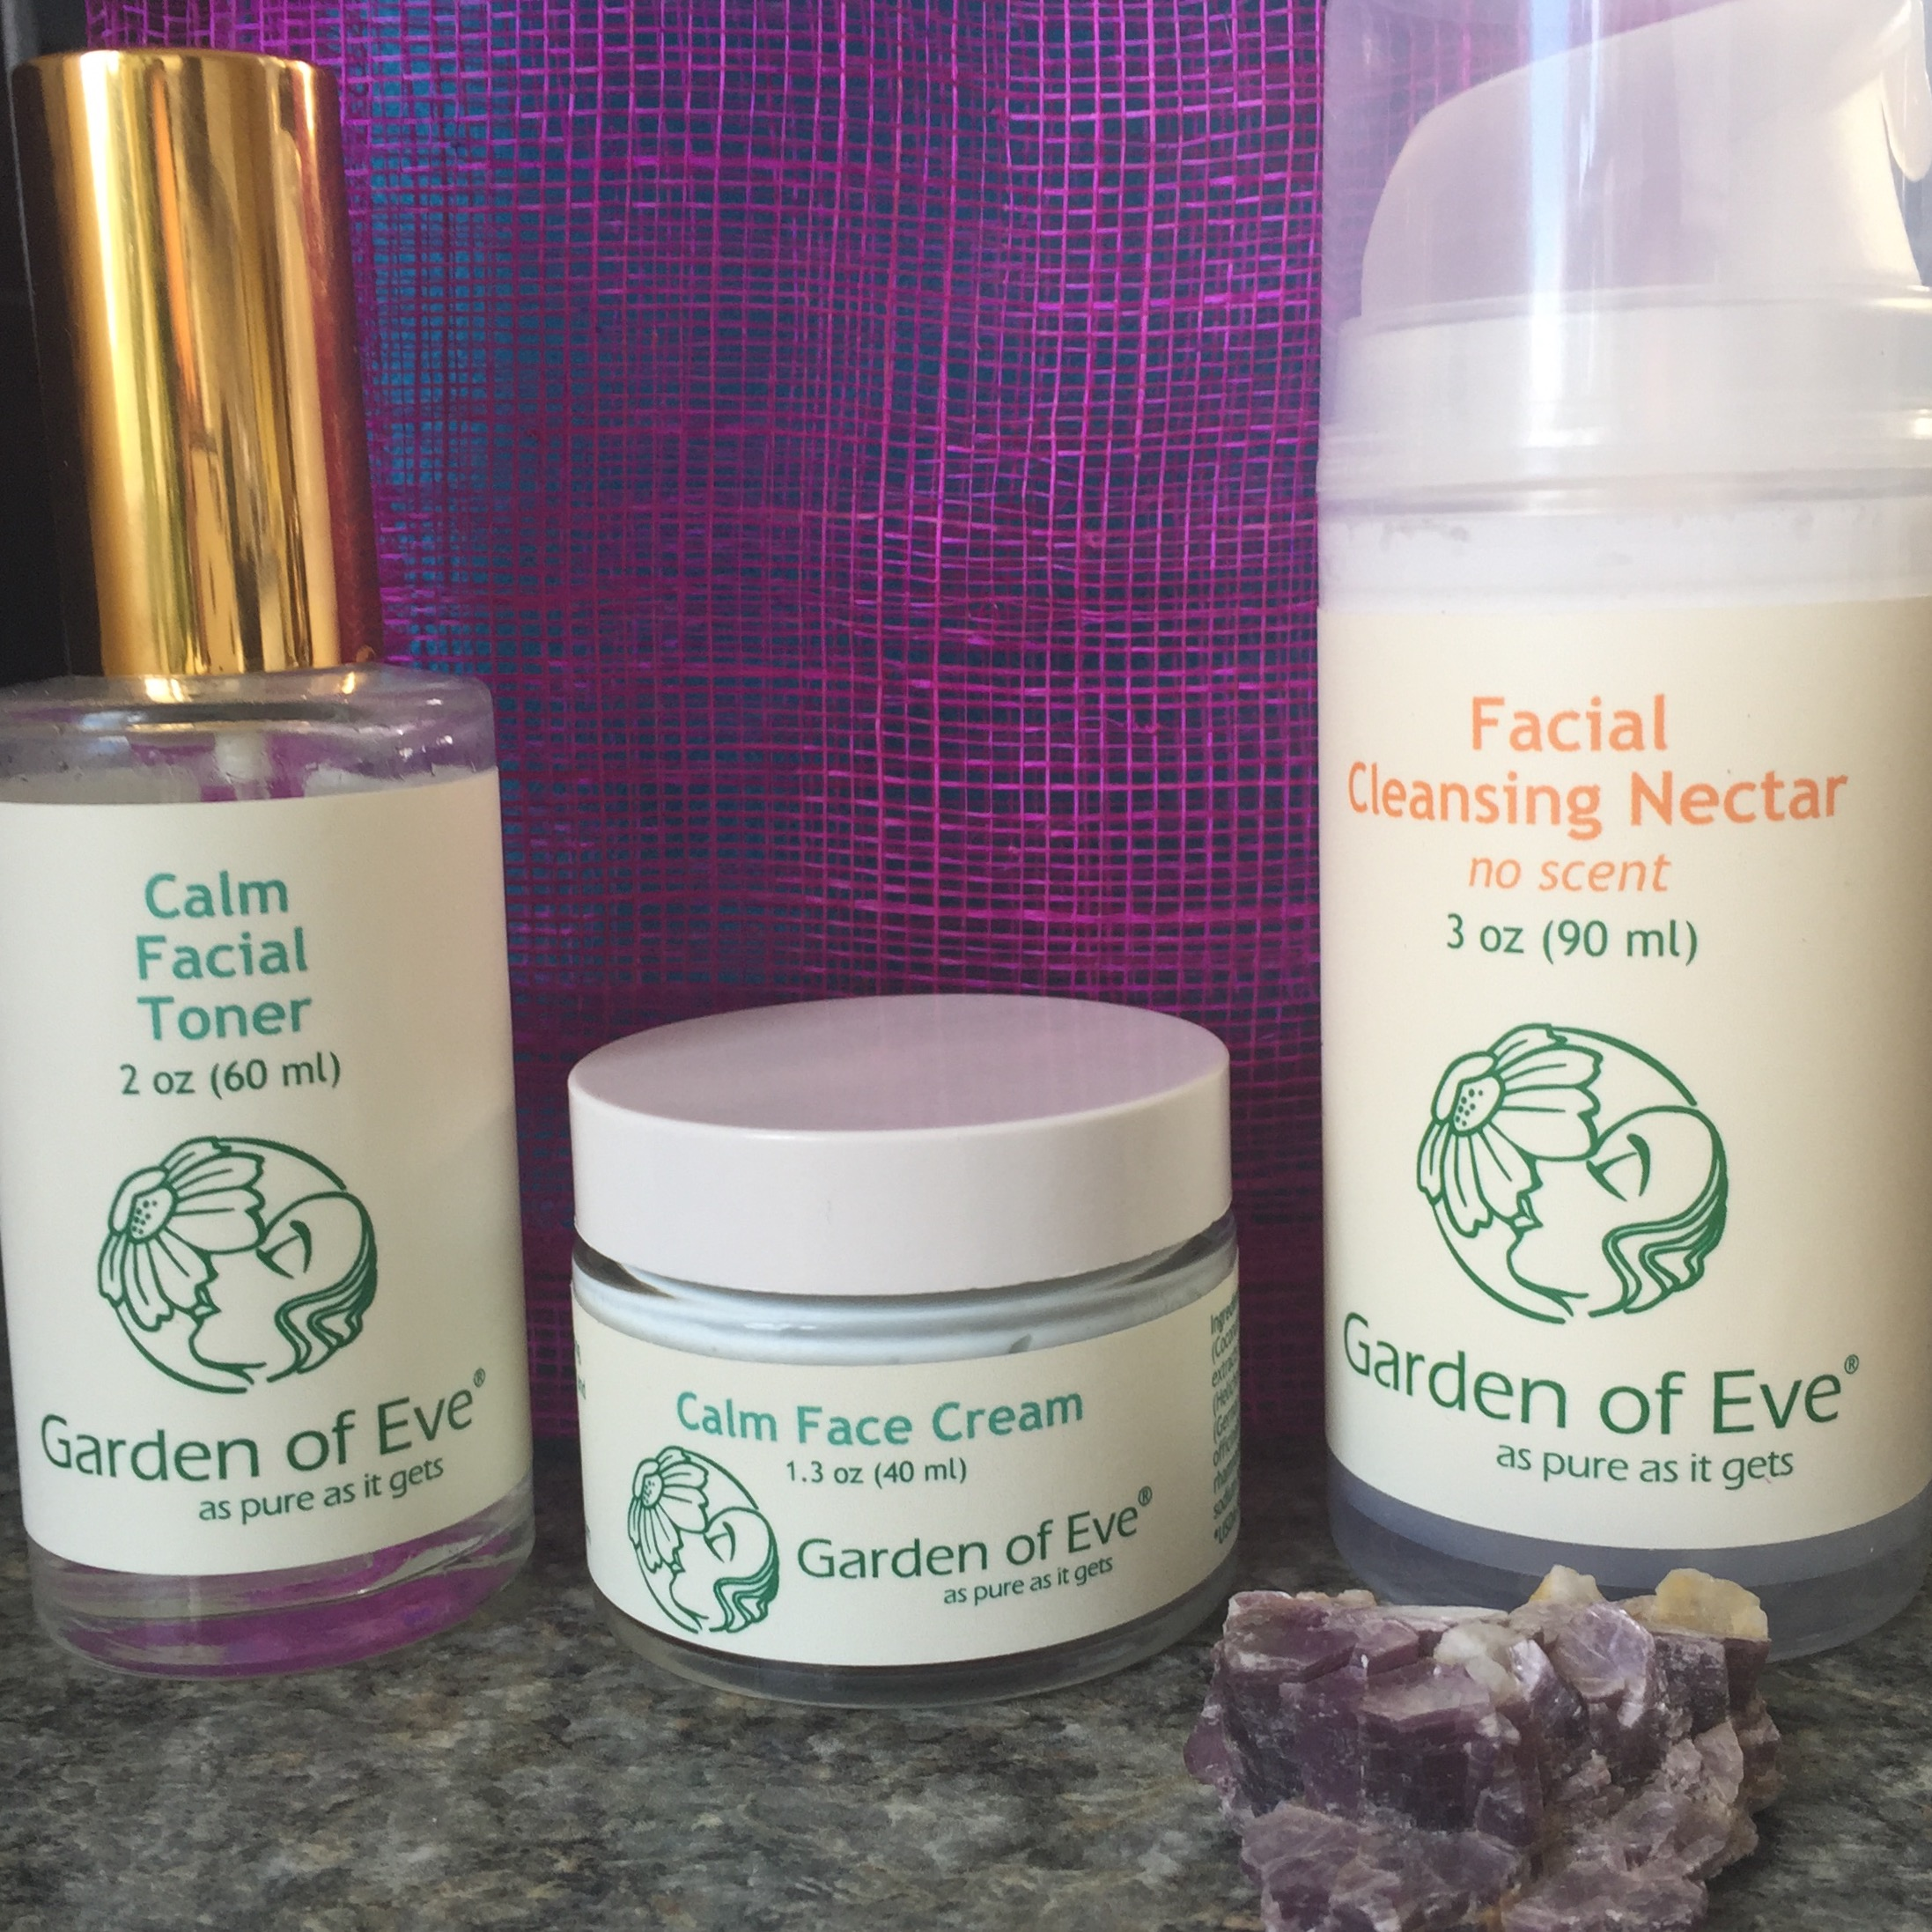 Of eve skin care facial cleansing nectar sorry, not